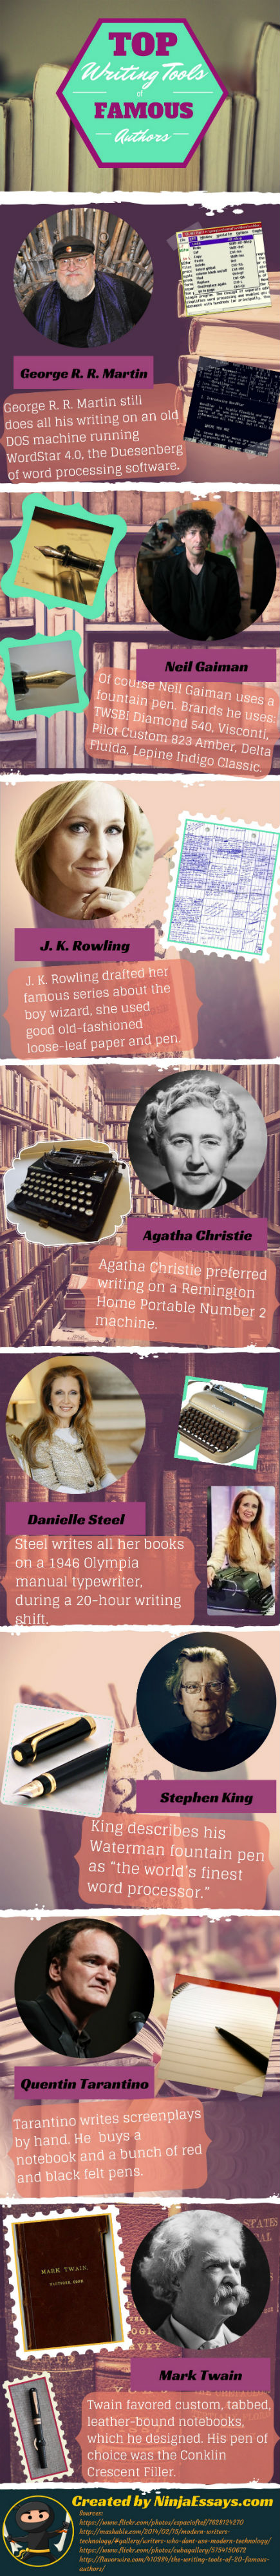 Writing Tools of Famous Writers [Infographic]